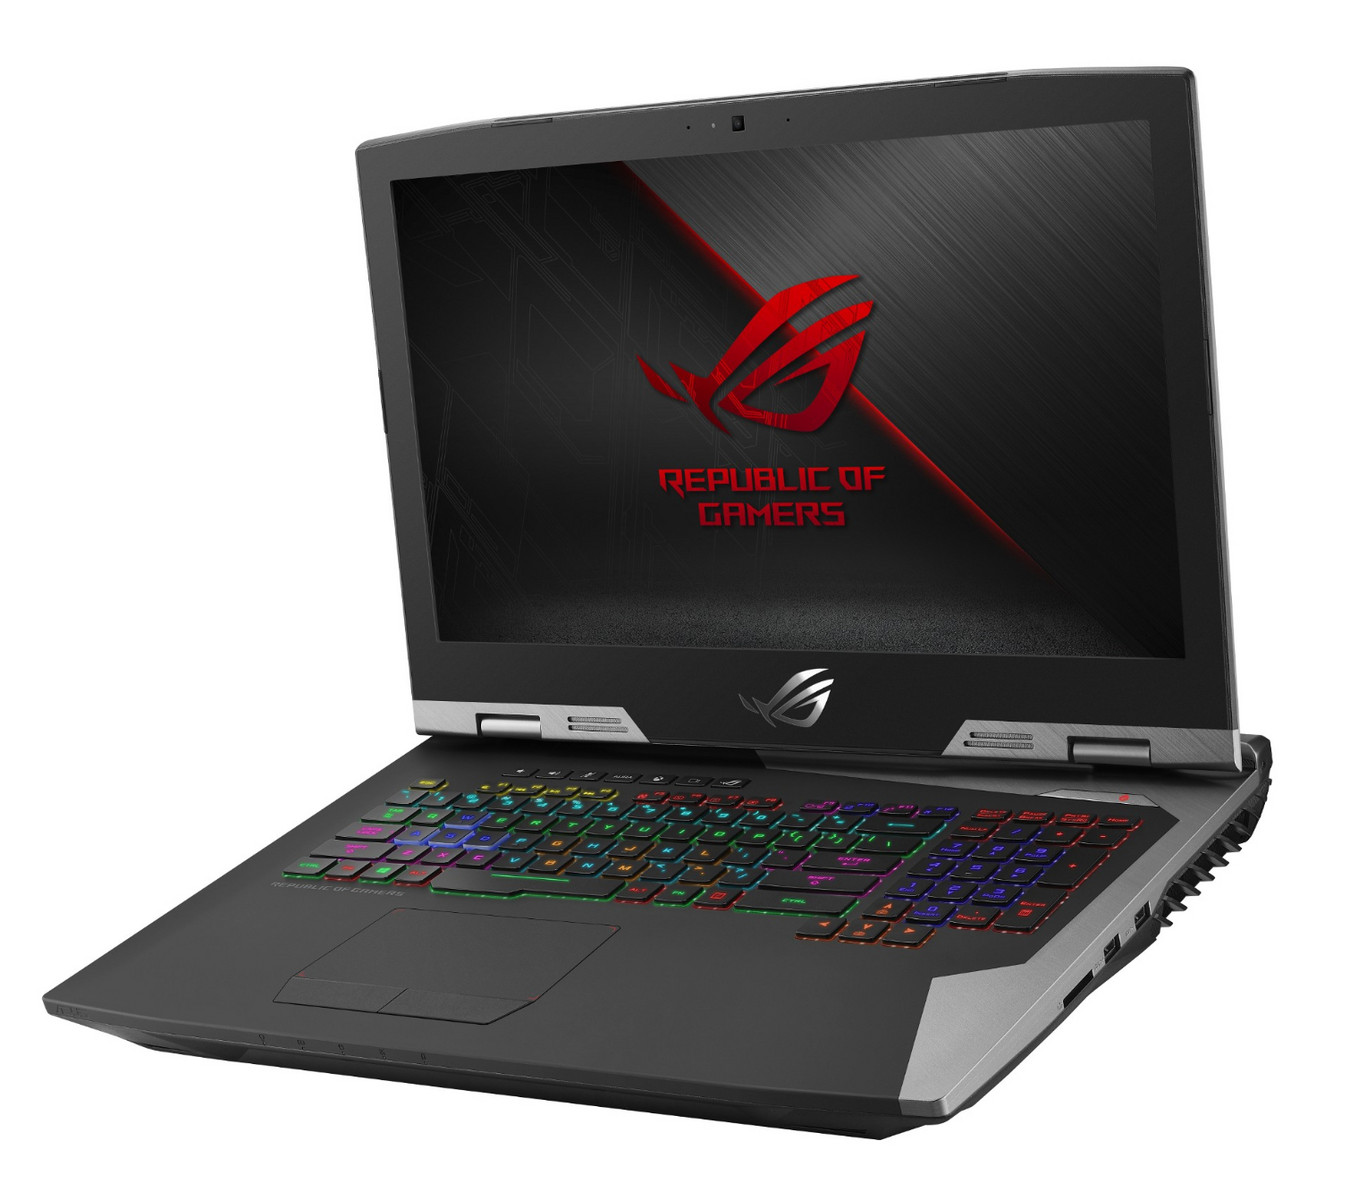 Asus Launches The Impressive 17 Inch Rog G703 Gaming